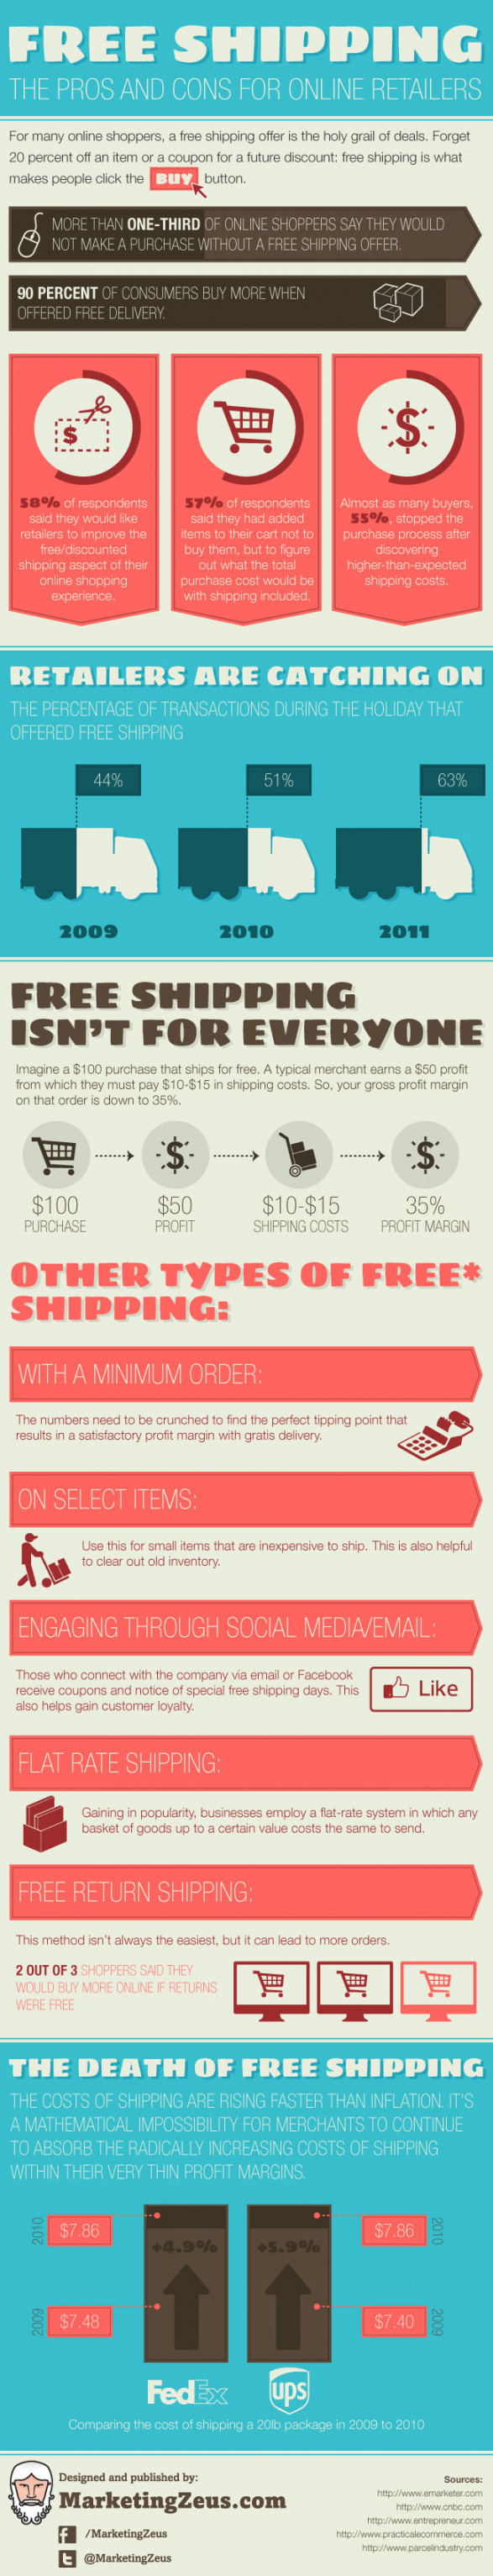 Free Shipping: The Pros and Cons